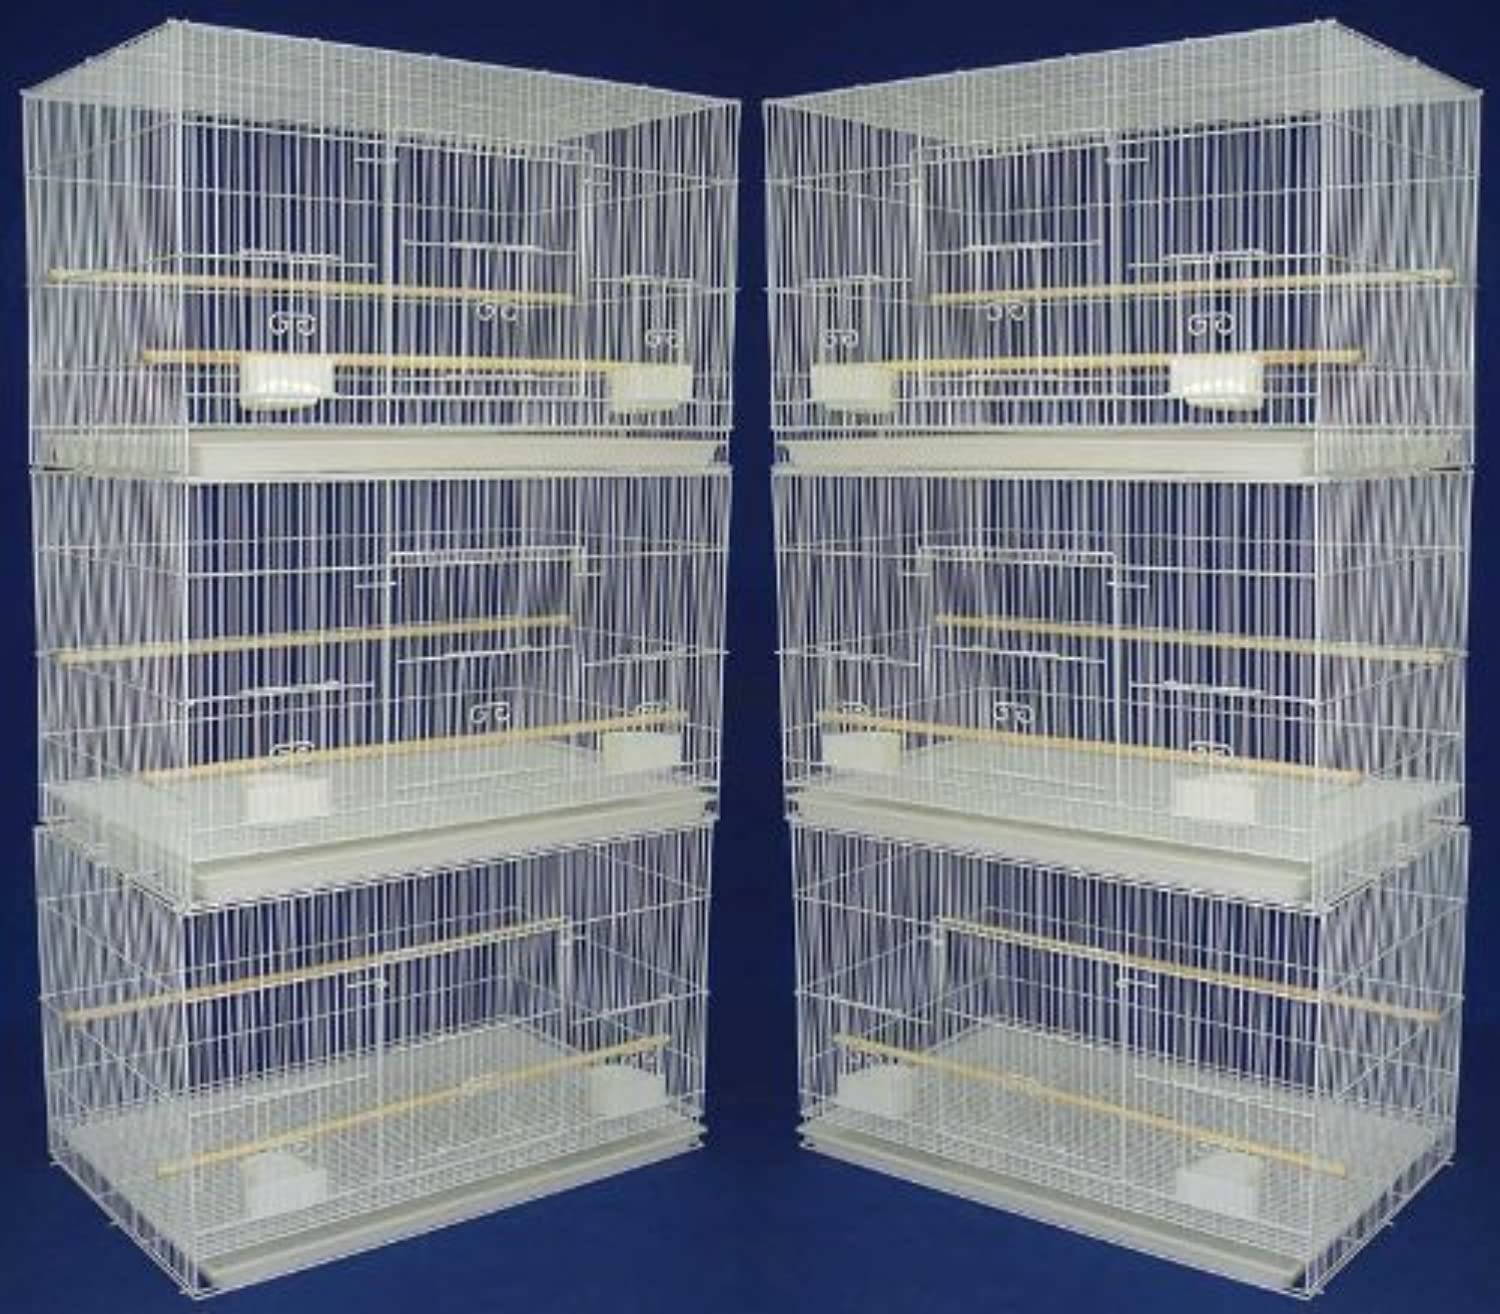 Lot of 6 Aviary Breeding Bird Finch Parakeet Finch Flight Cage 24  x 16  x 16  White by Mcage